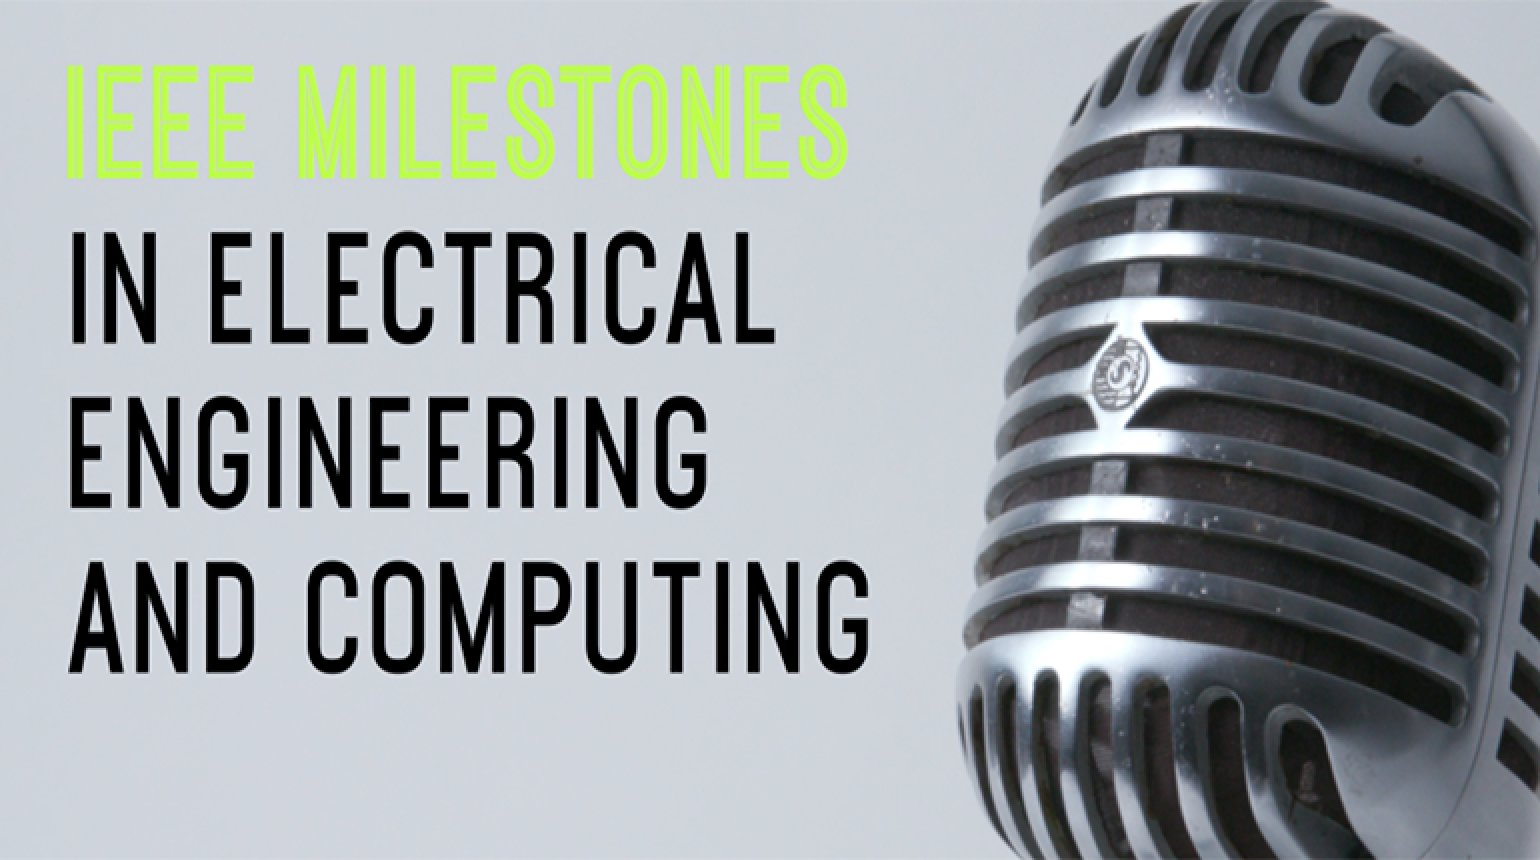 IEEE Milestone in Electrical Engineering and Computing